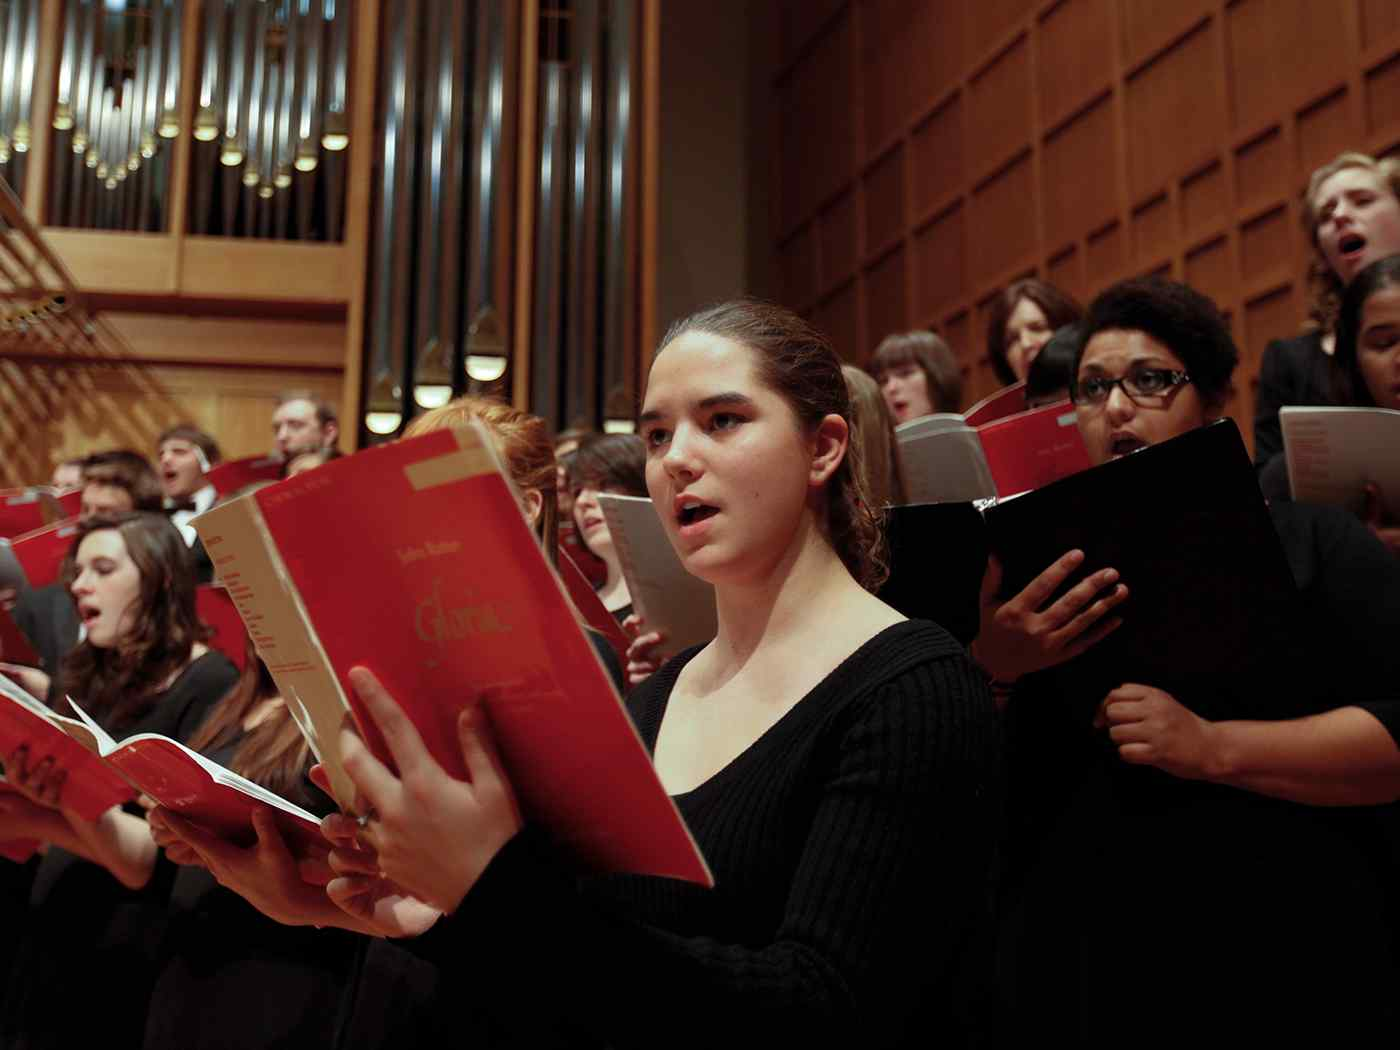 Vocal ensemble performs in Wiedemann Hall